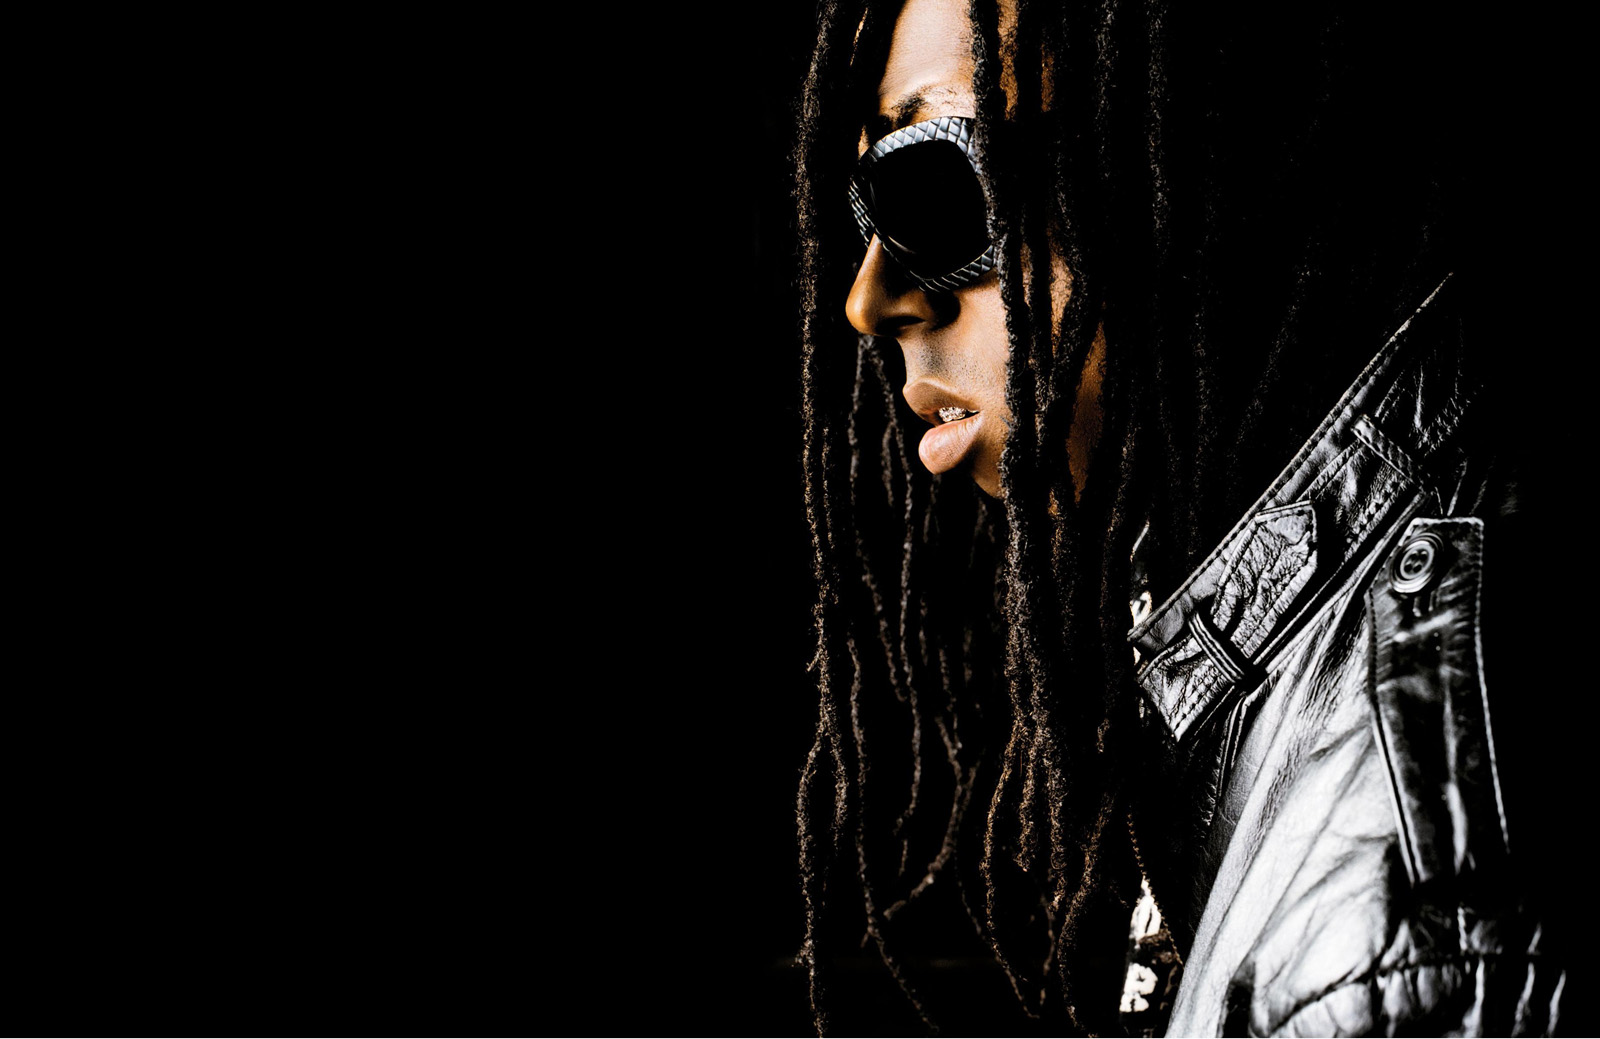 Lil Wayne Sun Glasses Dark Background Vvallpaper